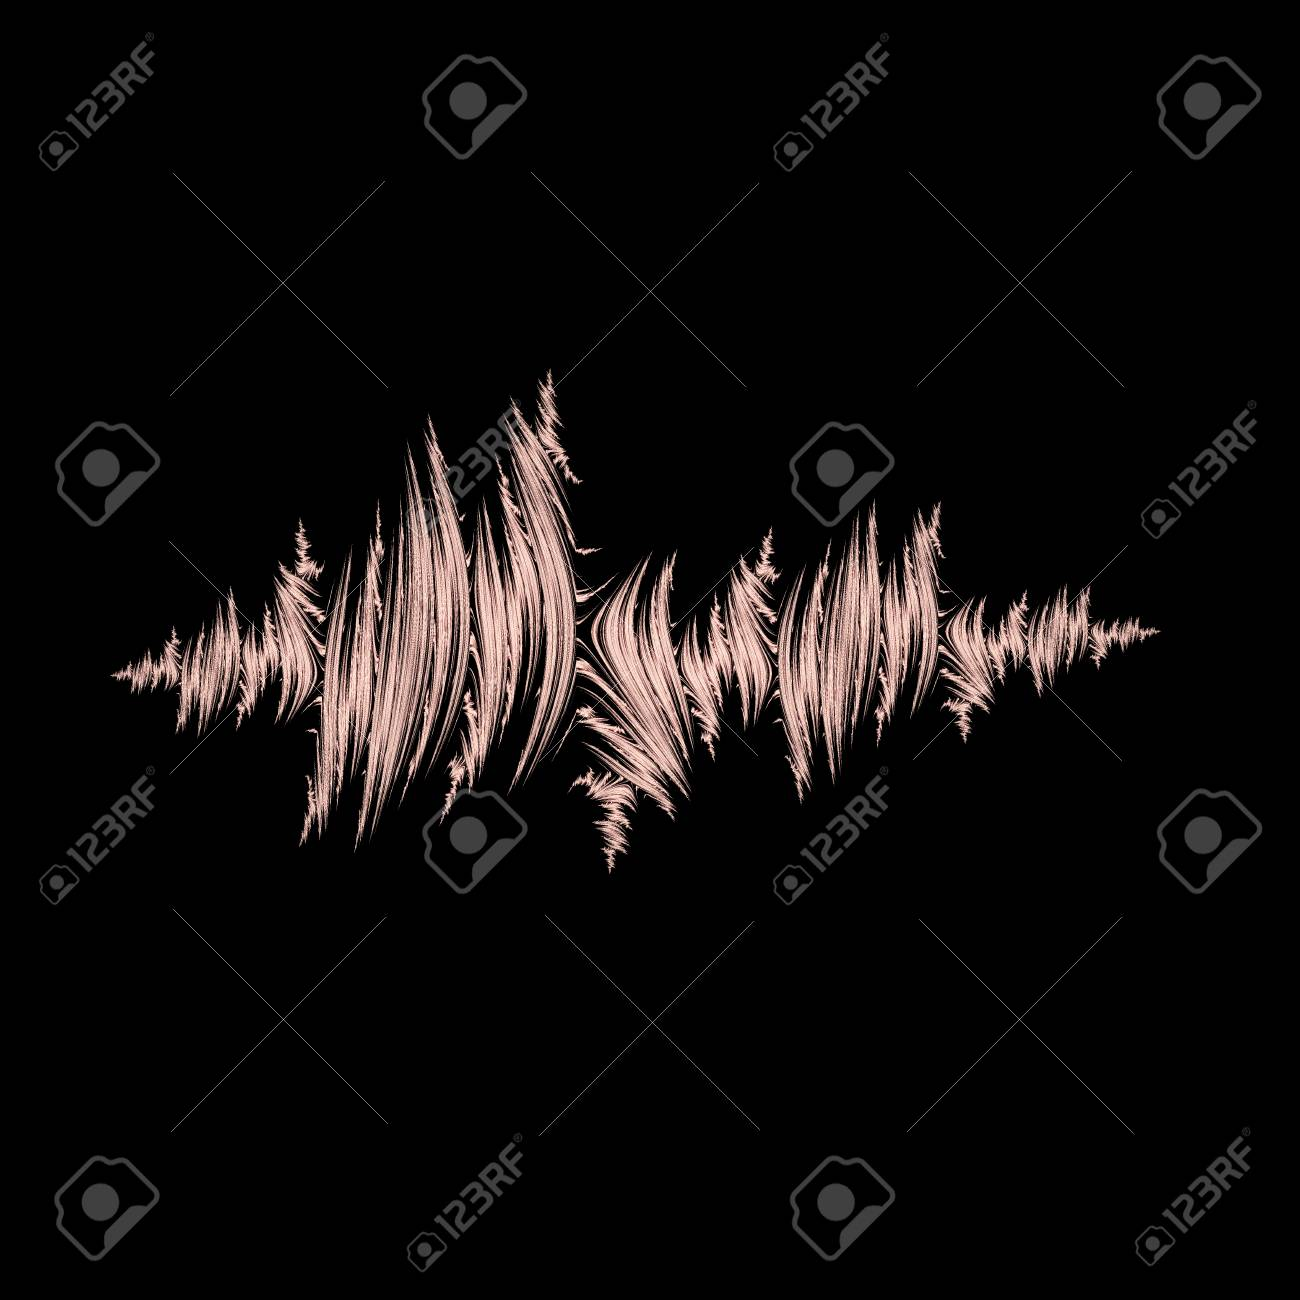 Sound Wave Music Audio Equalizer Background Wallpaper Design